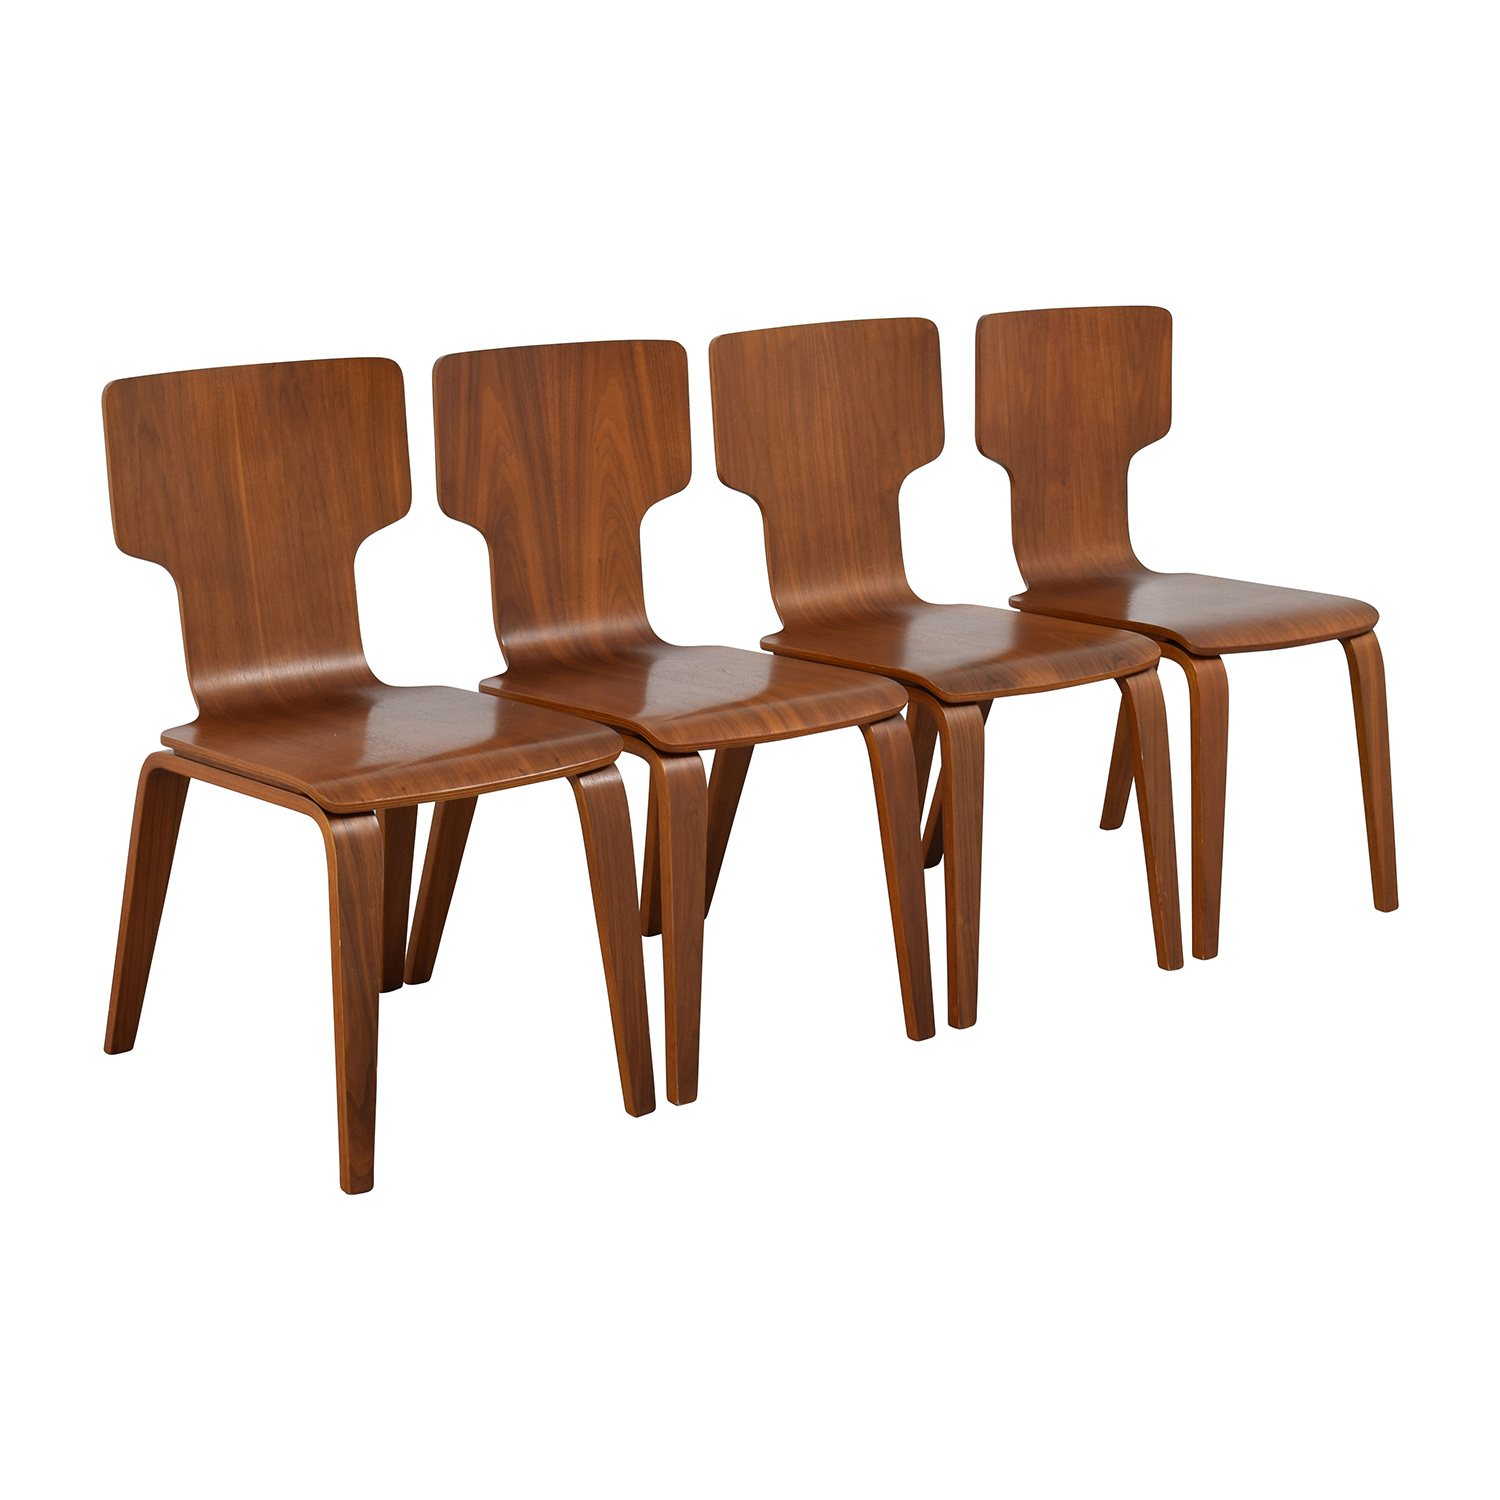 Merveilleux ... West Elm West Elm Dining Table Chairs Brown ...